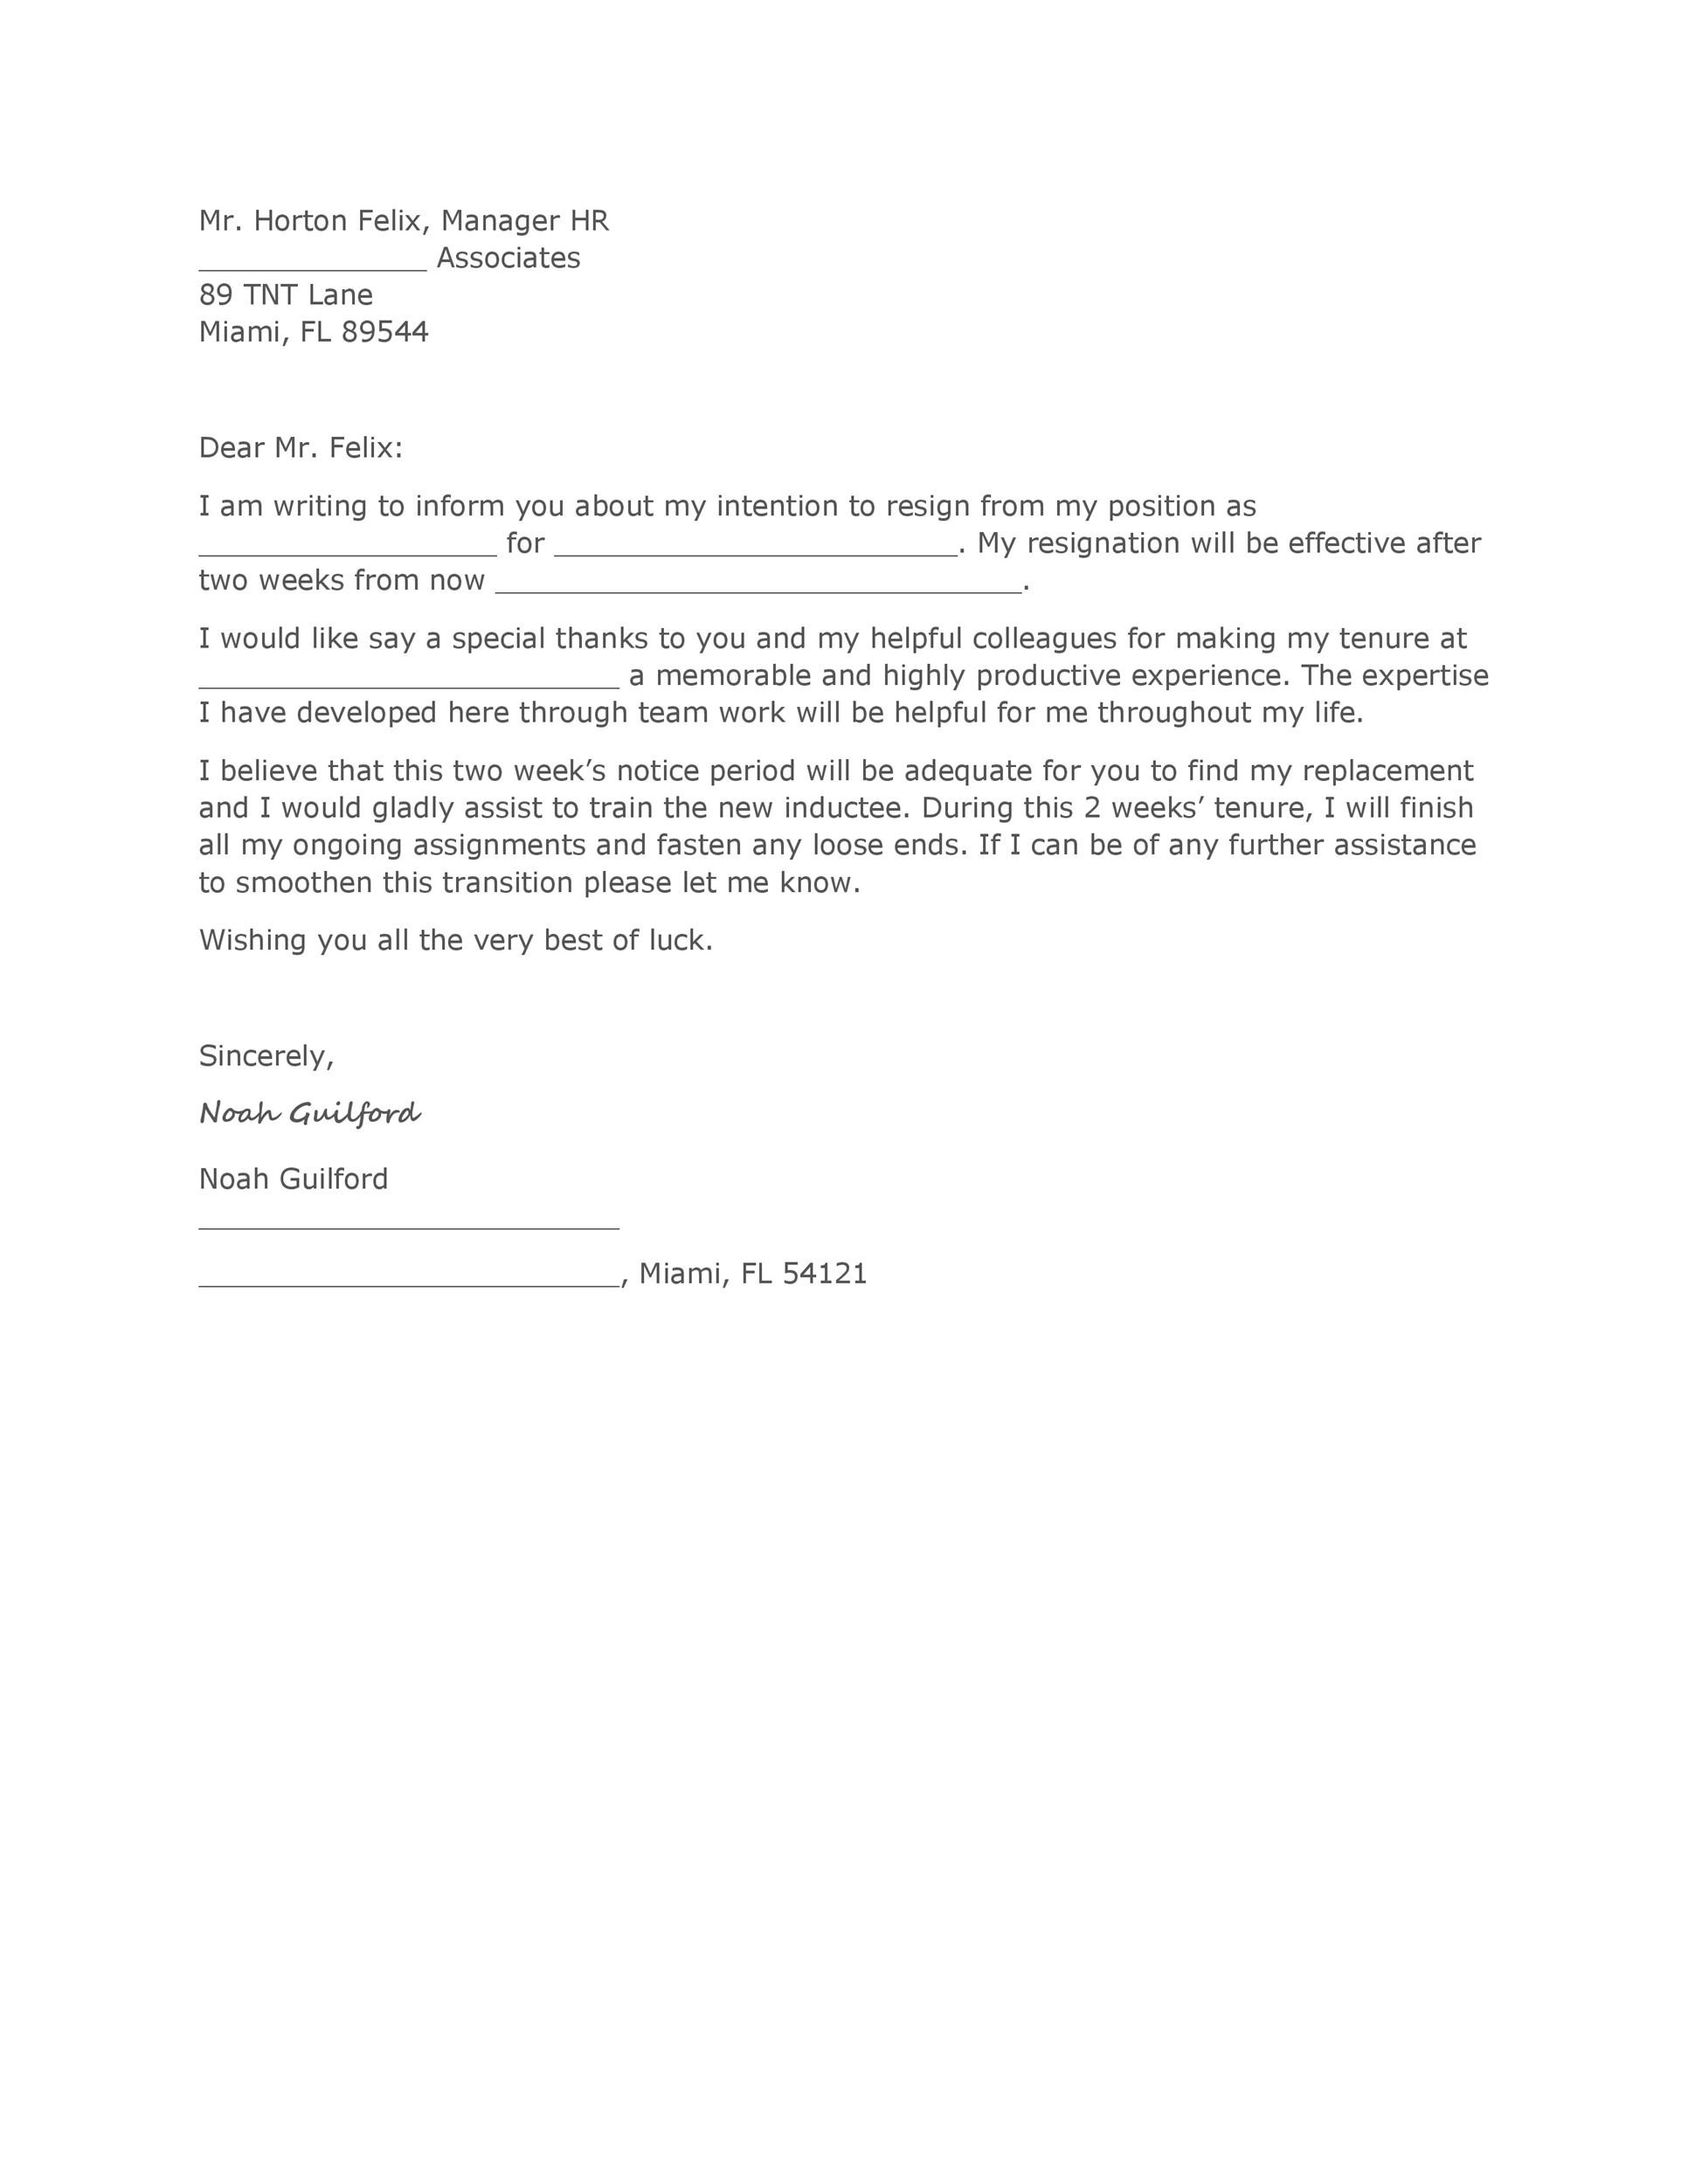 40 Two Weeks Notice Letters Resignation Letter Templates – Sample Resignation Letters with Notice Period